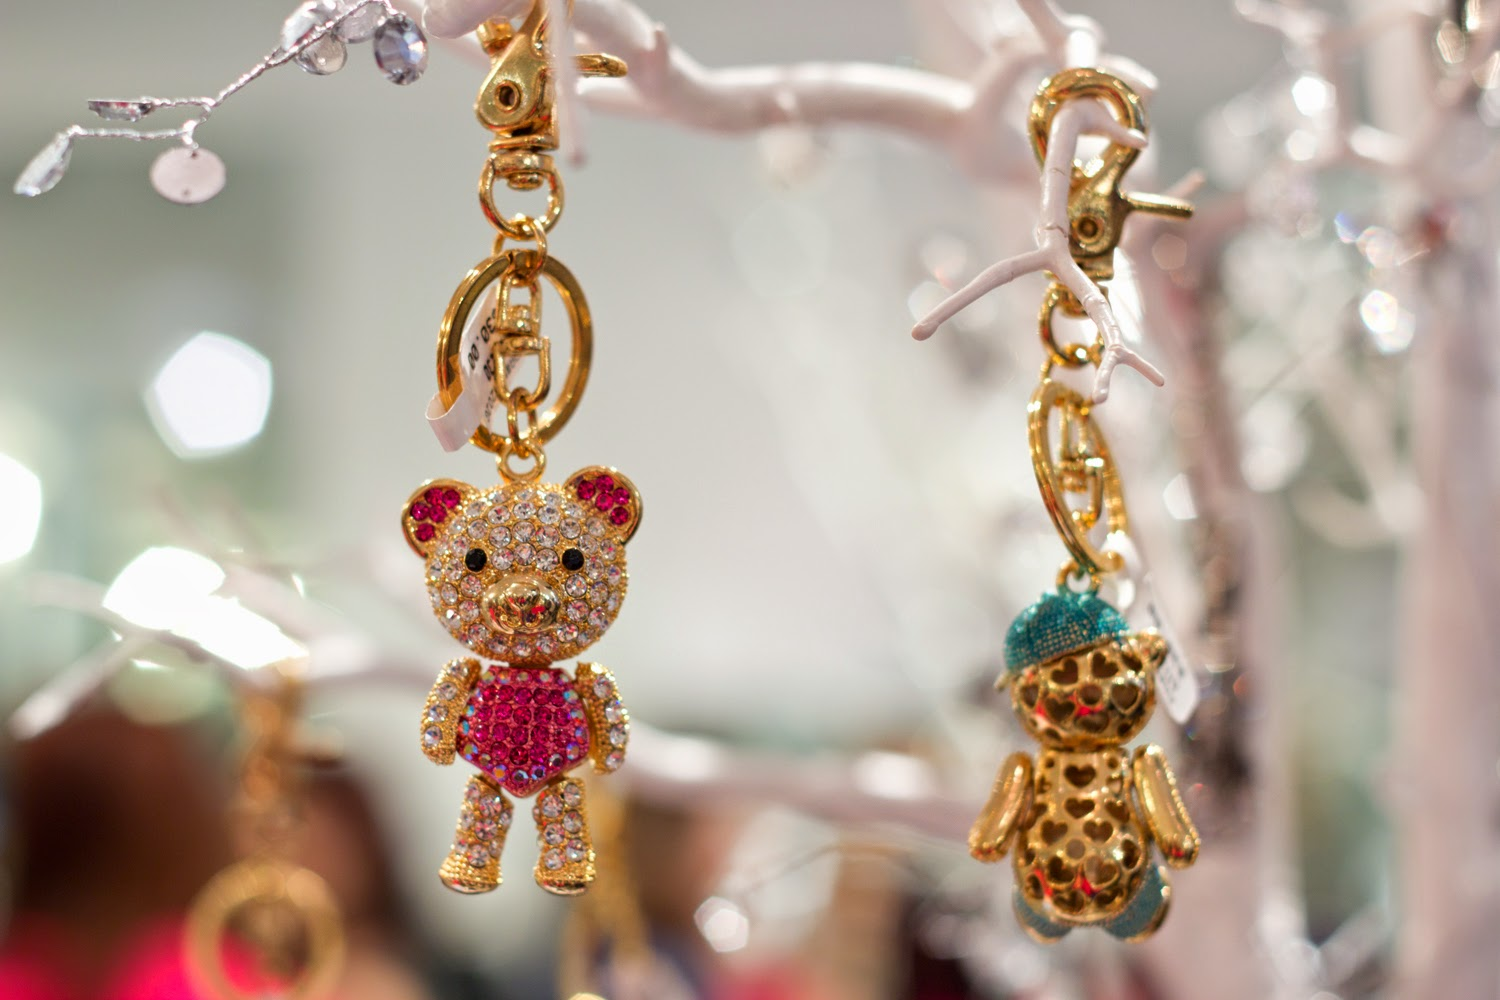 artemis-pop-up-jewellery-store-in-yorkville, cute-teddy-bear-key-chain